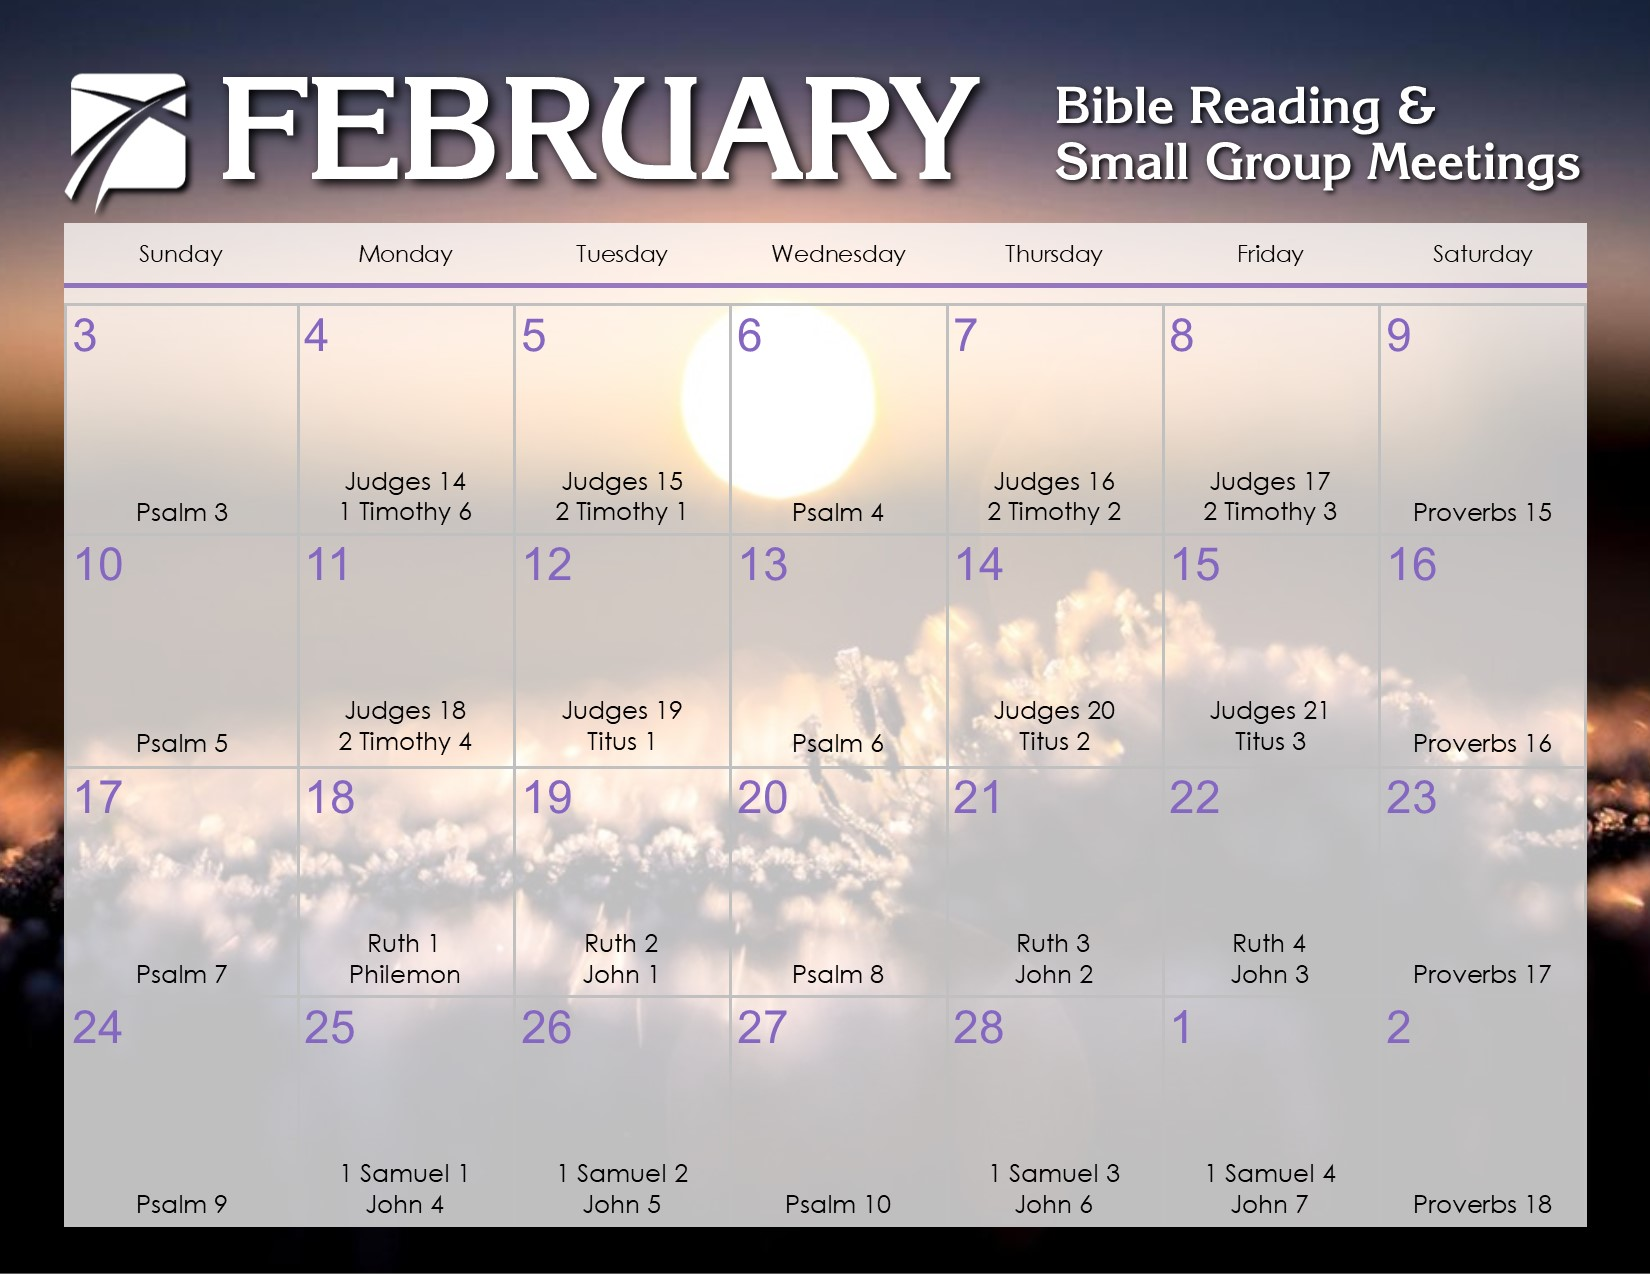 Bible Calendar For February 2019 February 2019 Daily Bible Reading Calendar – In God's Image